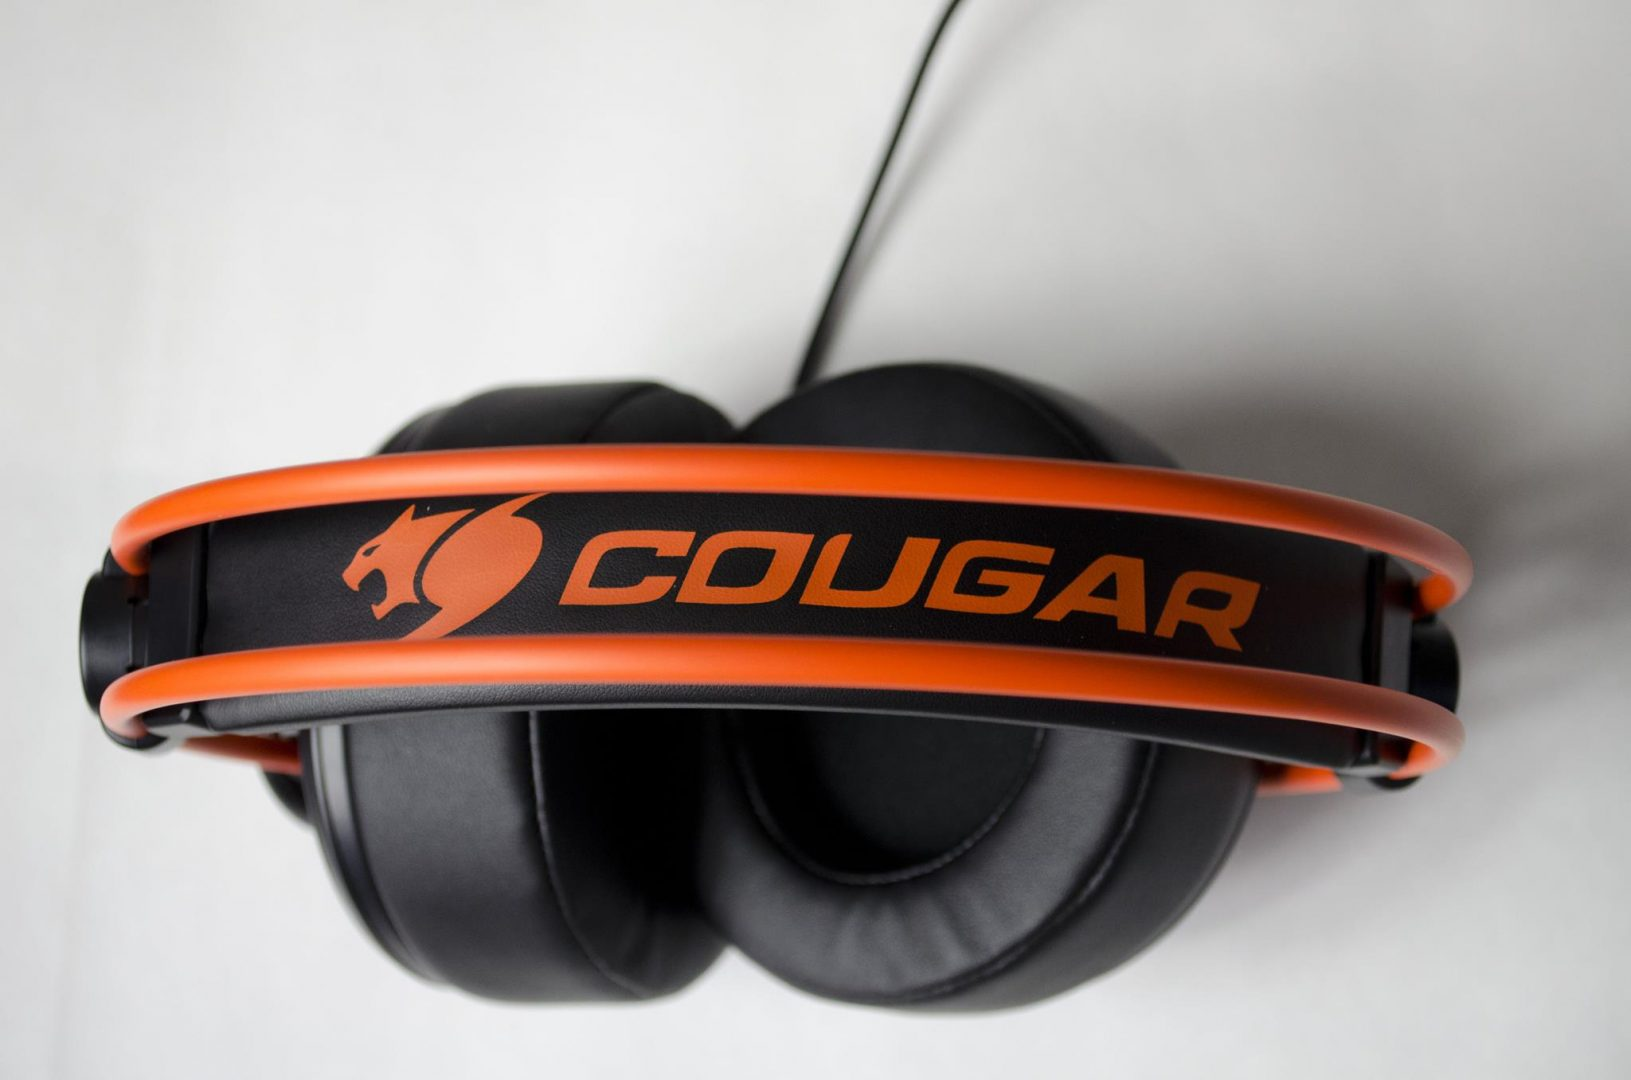 cougar immera headset review_4